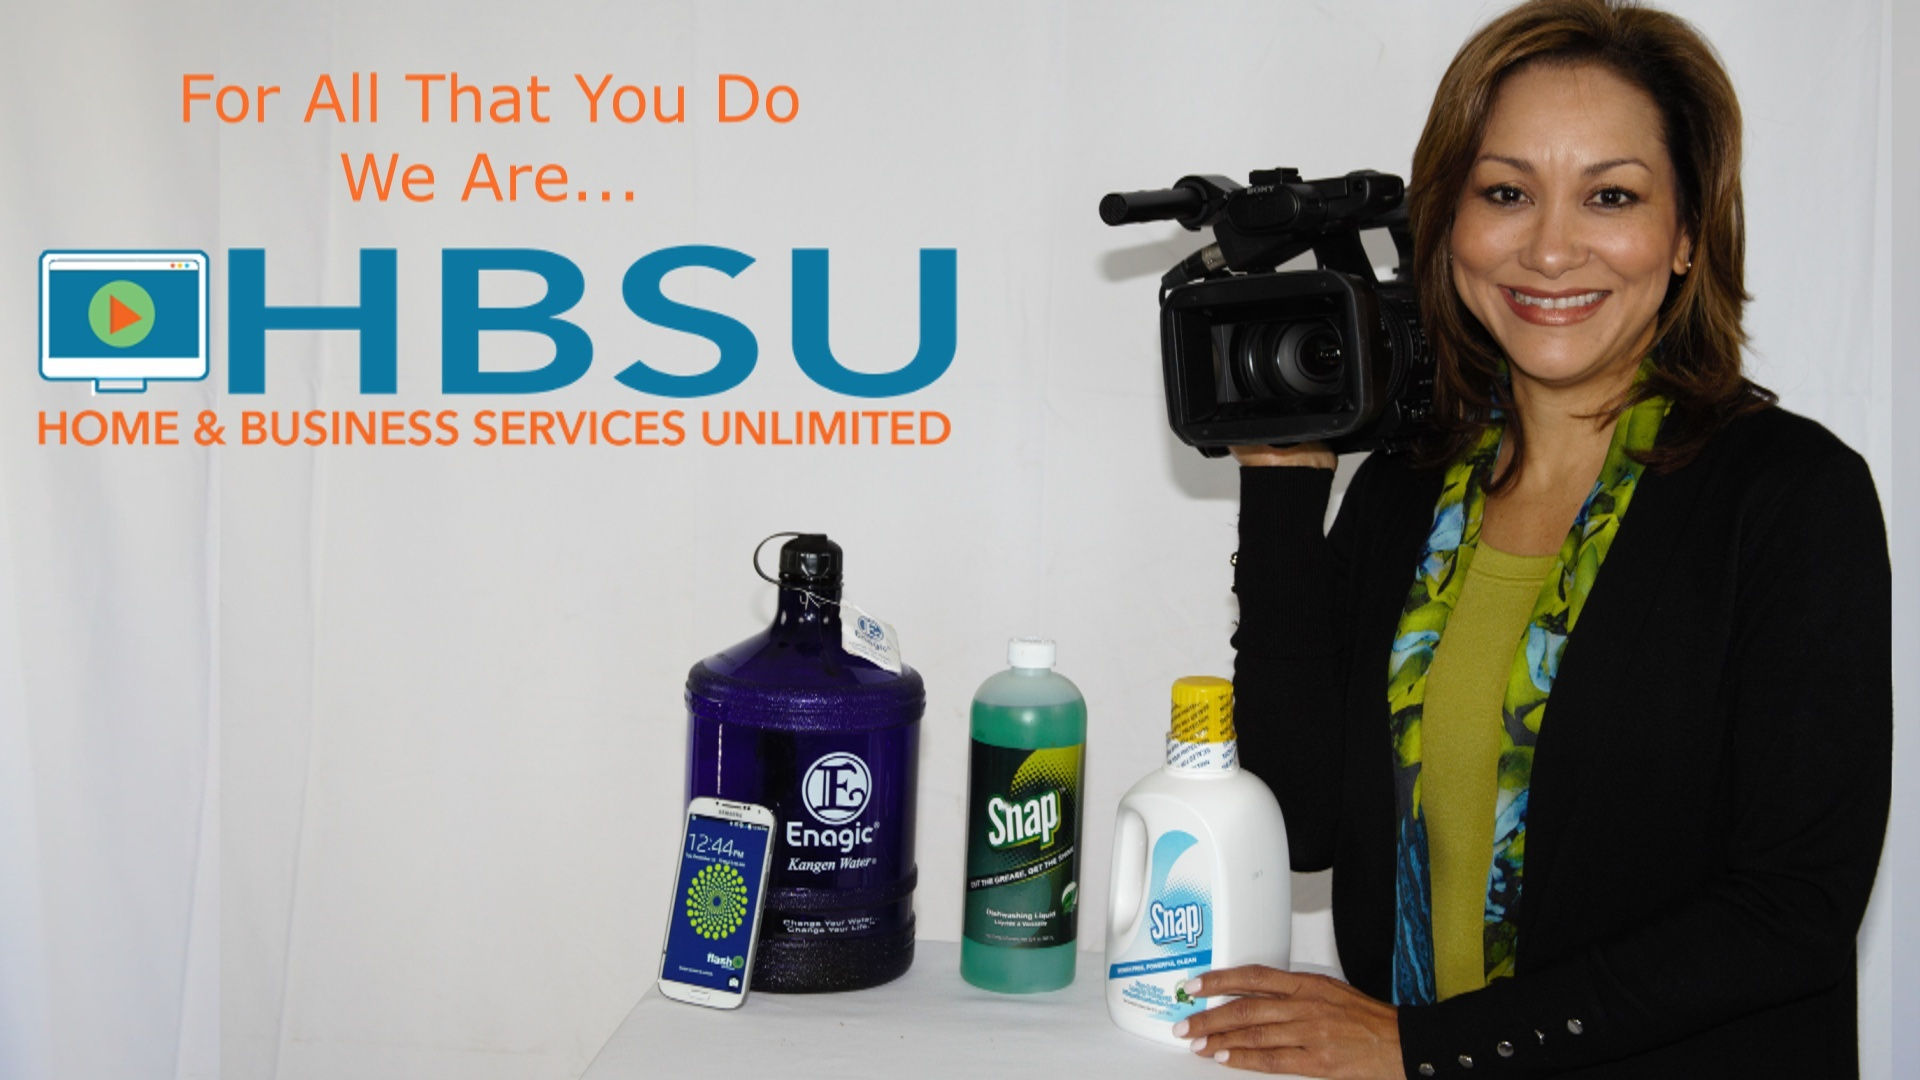 For All that You Do HBSU 6.jpg